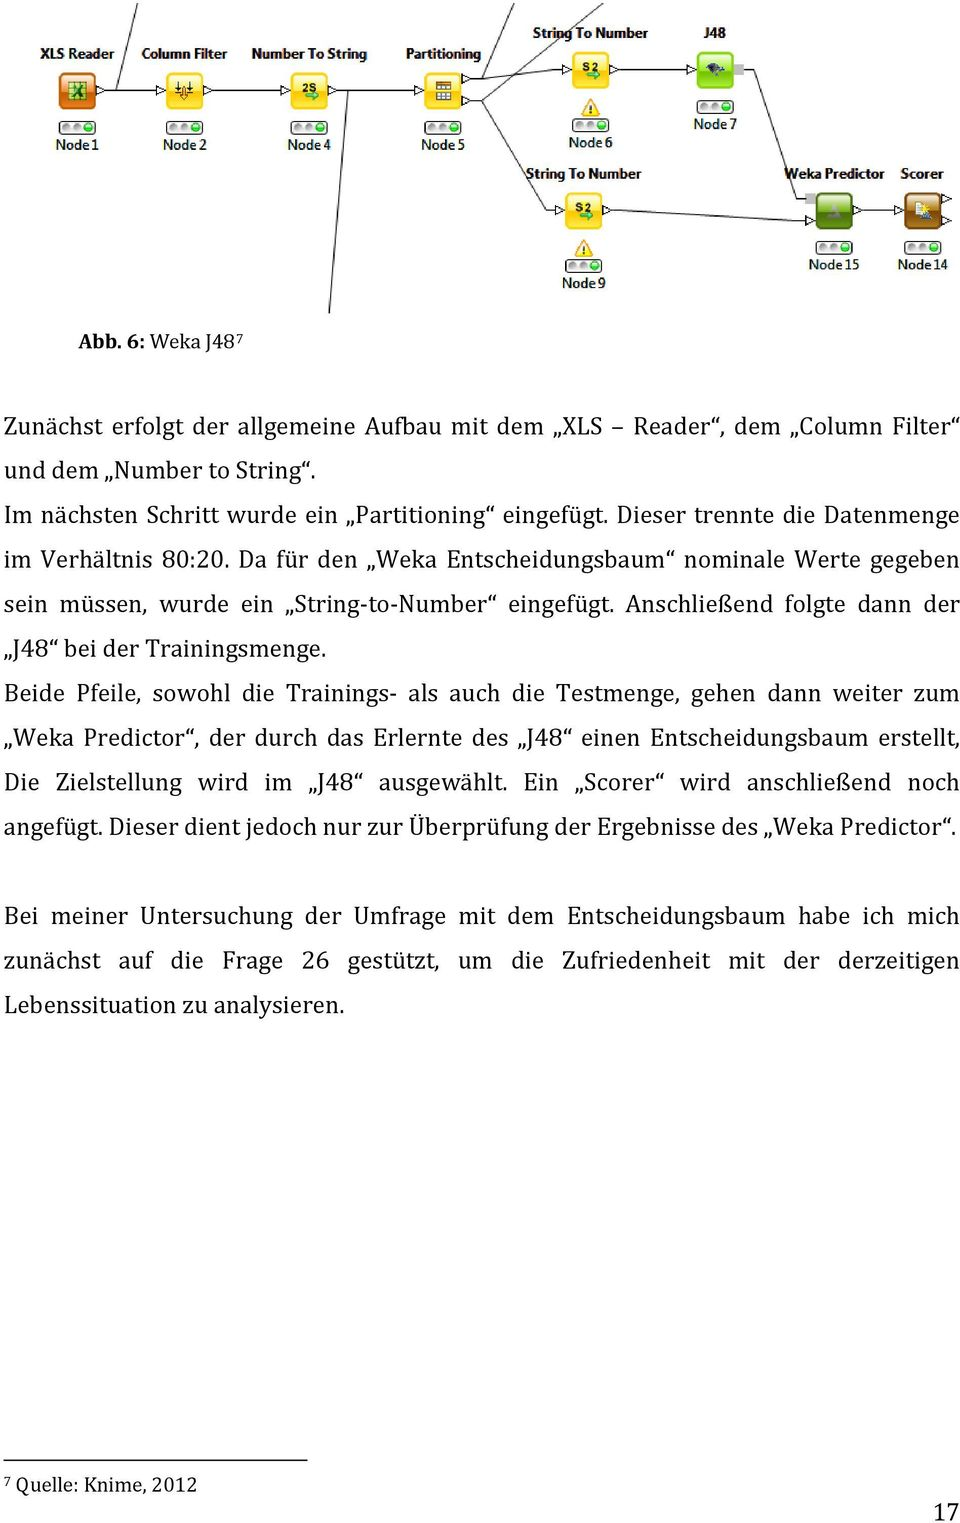 Groß Kritische Analysevorlage Ideen - Entry Level Resume Vorlagen ...